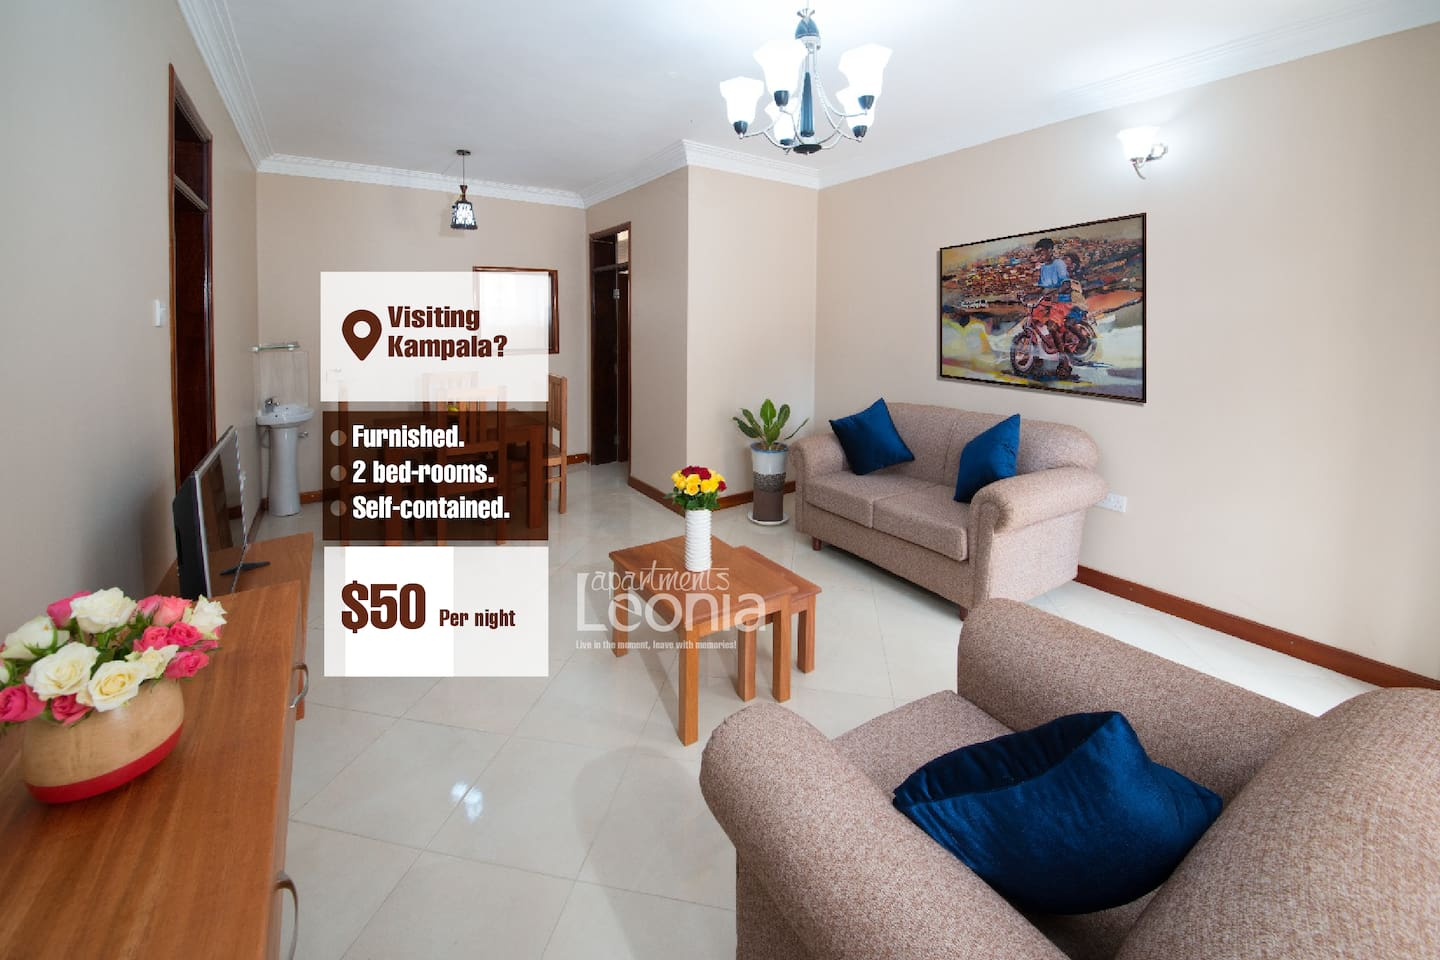 Apartments Leonia - Self-contained 2 Bedroomed apartments in Kampala